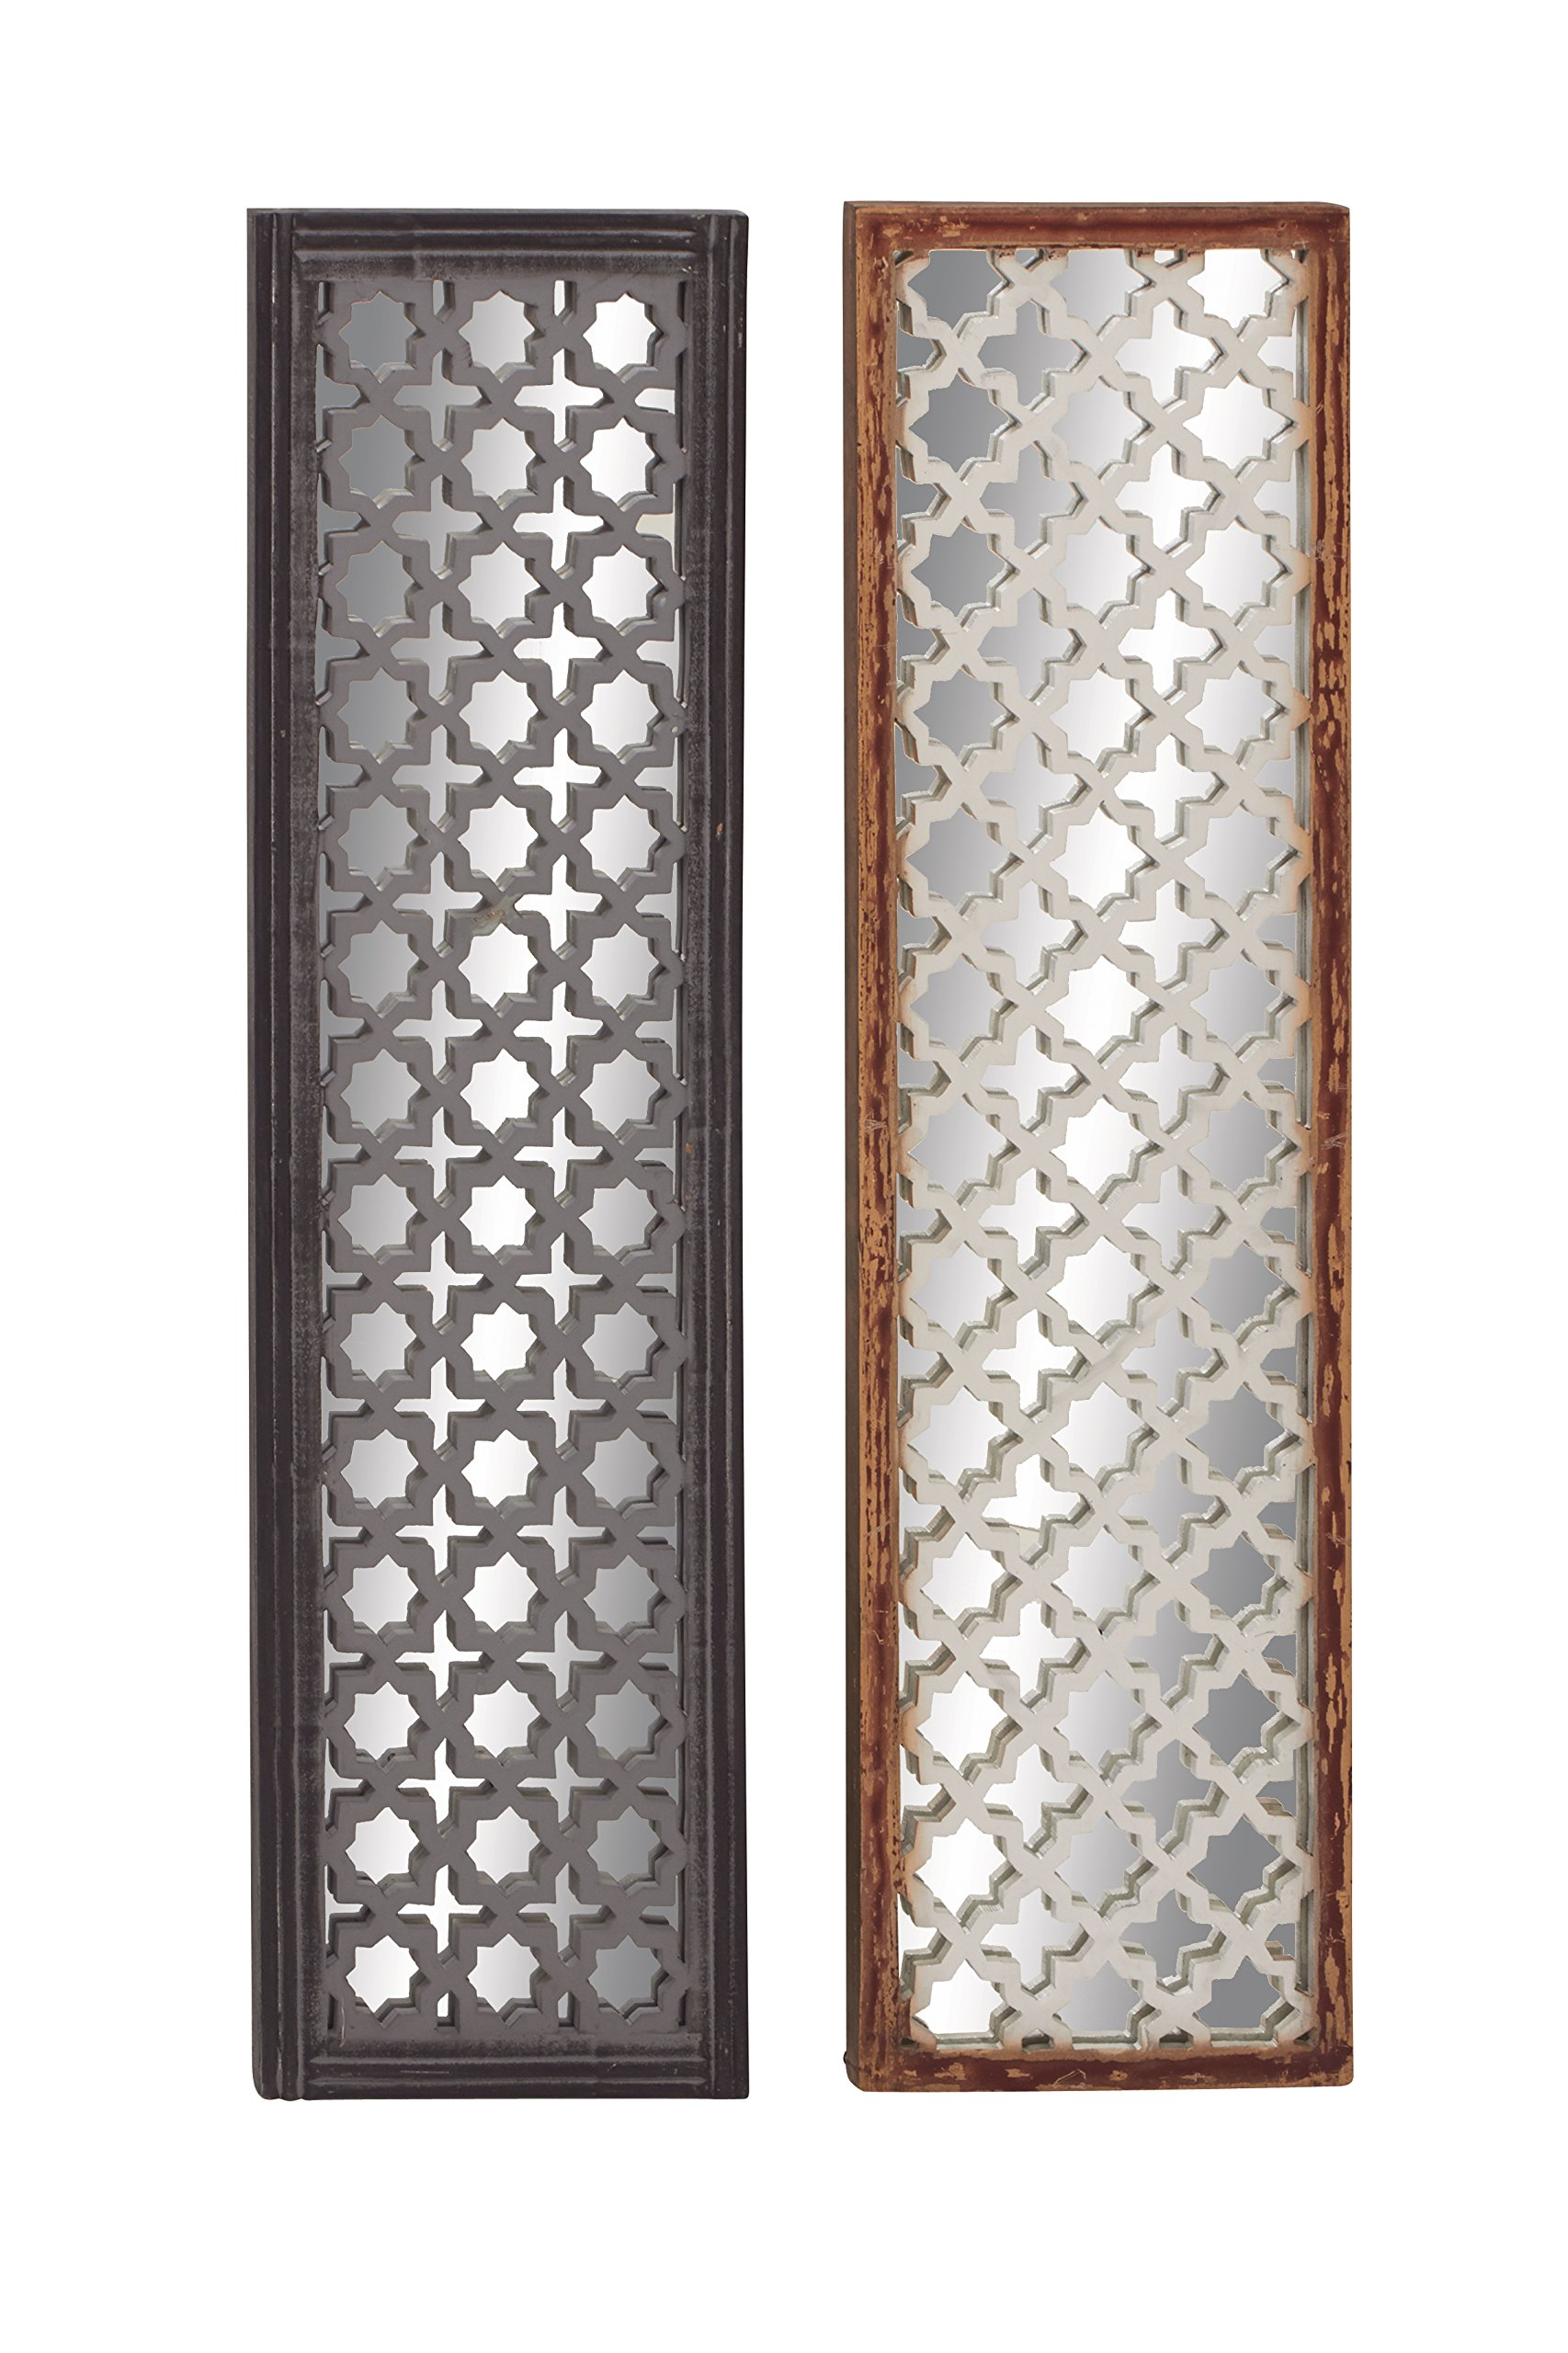 Deco 79 23713 Wood Mirror Wall Panel, 2 Assorted, 12 by 44''